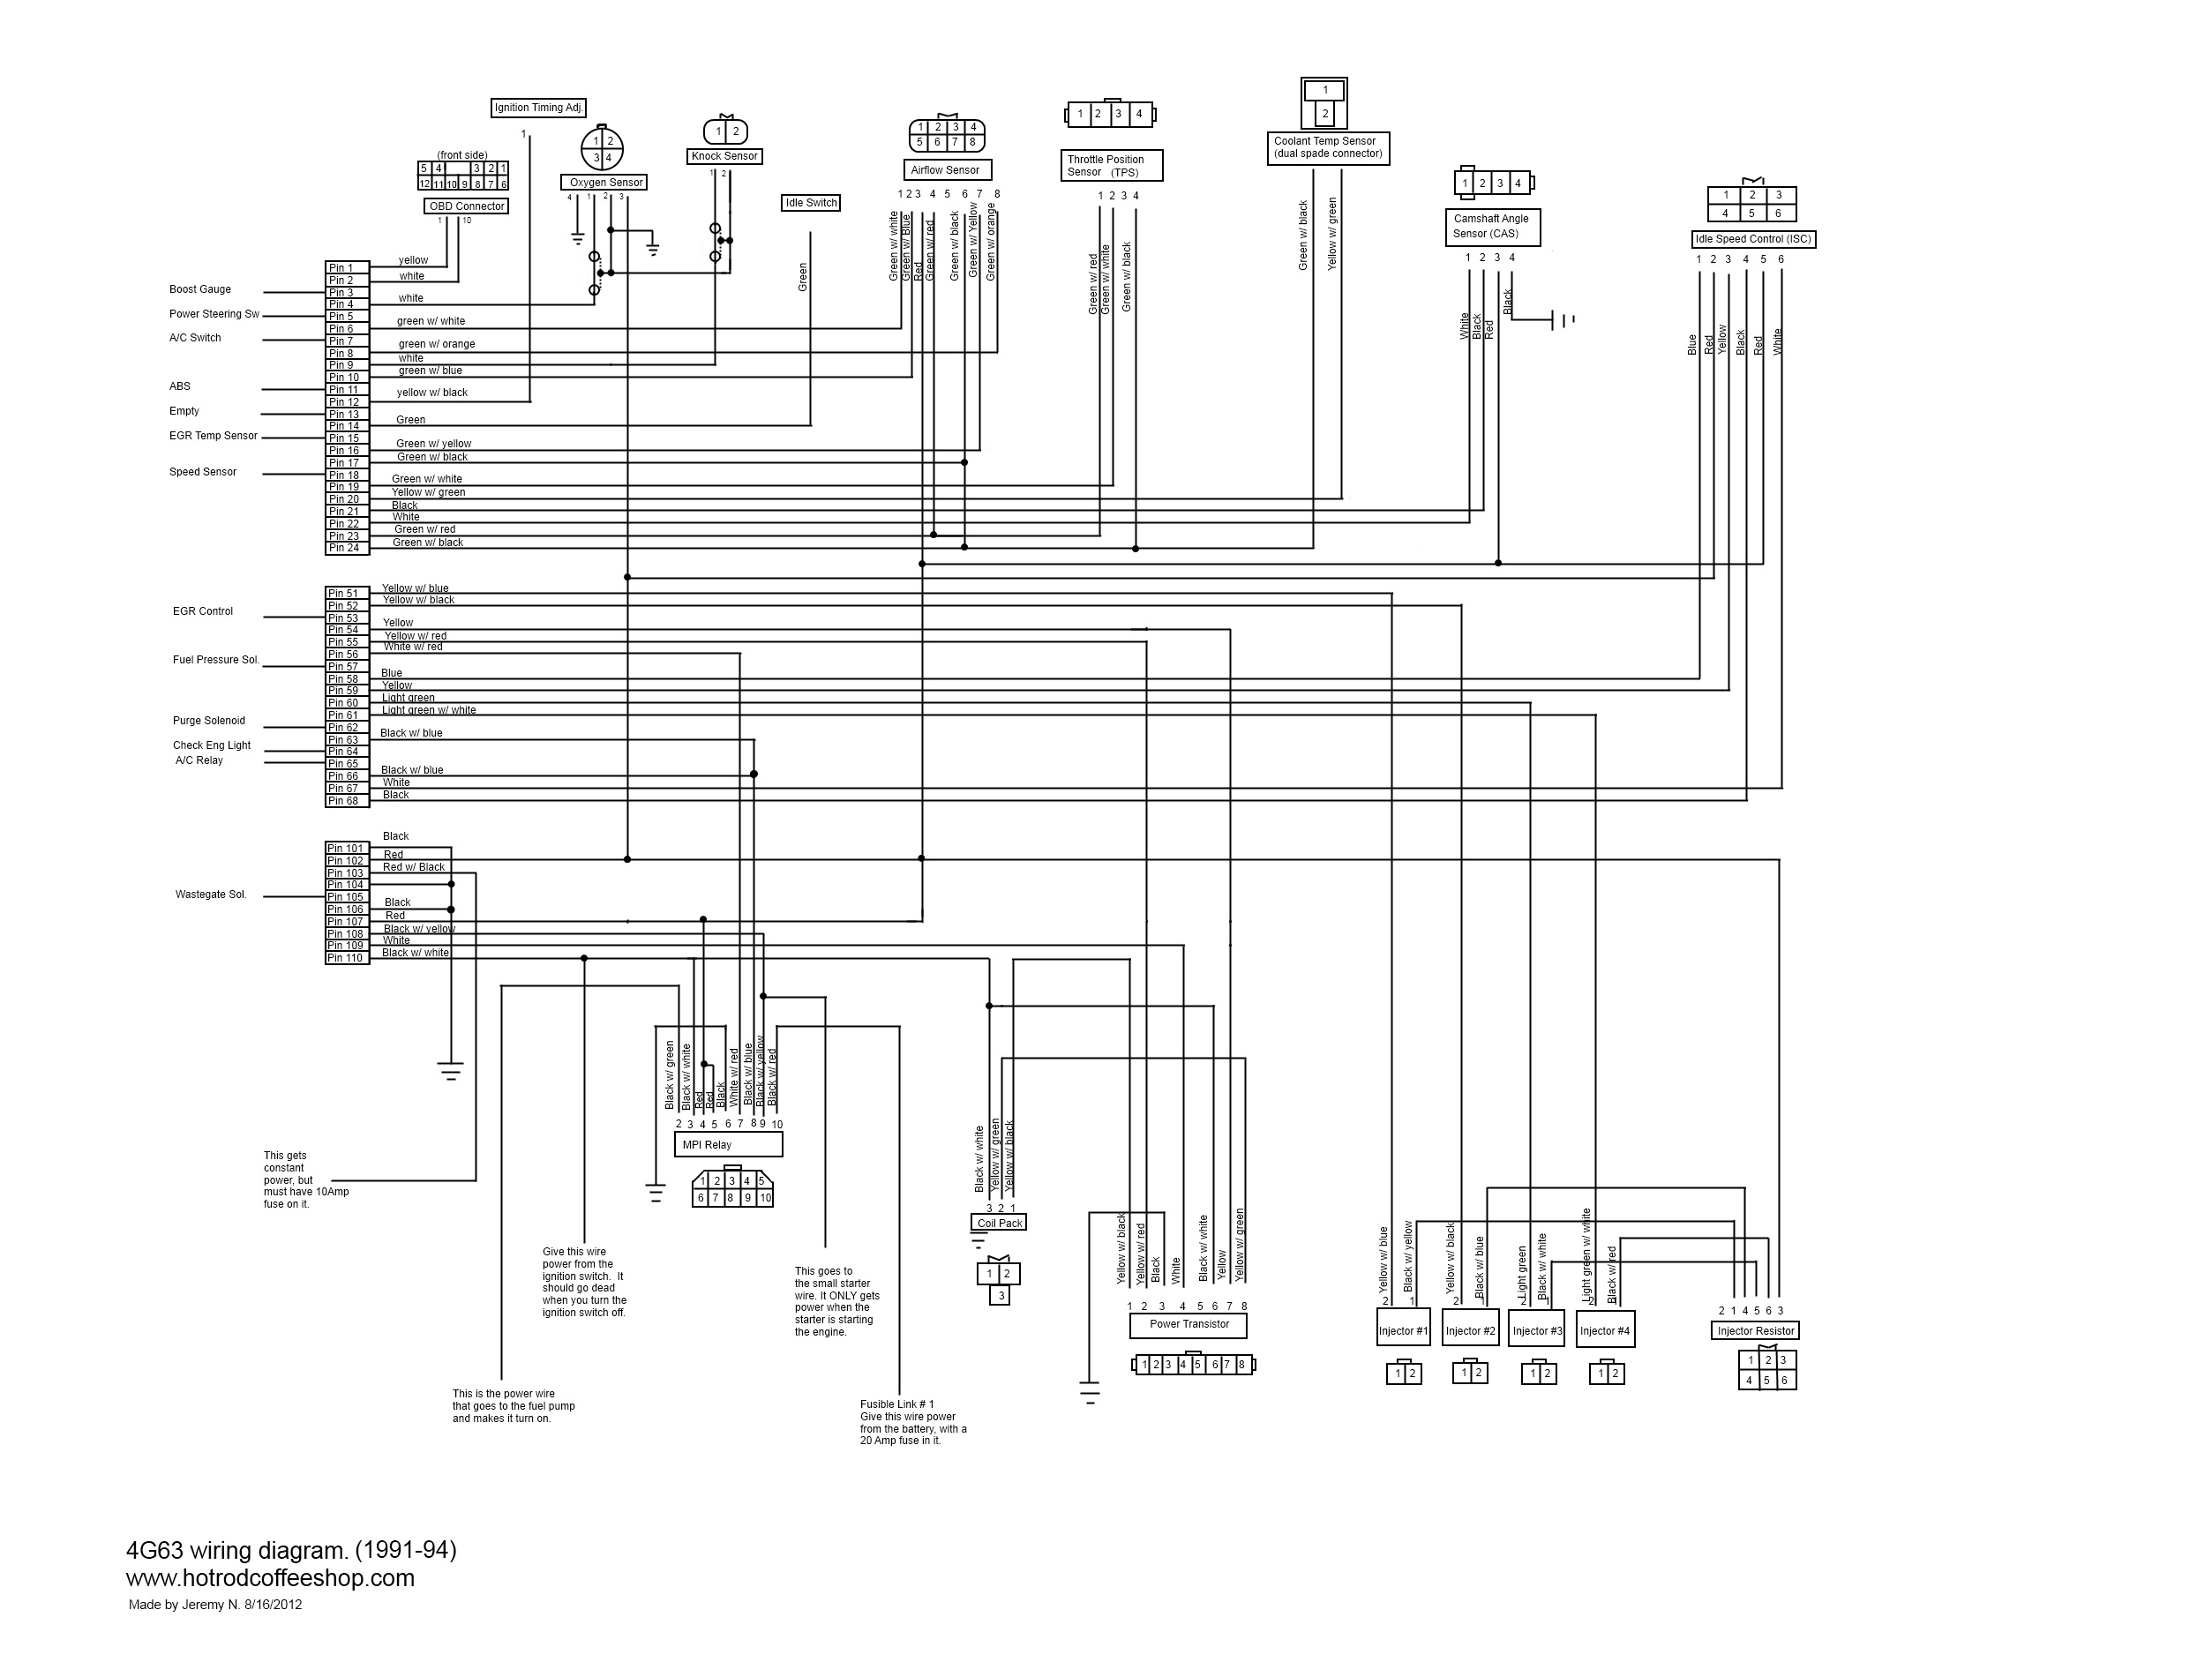 4g63ecudiagram_1 blog hotrodcoffeeshop com wp content uploads 2012 mitsubishi galant wiring diagram at creativeand.co